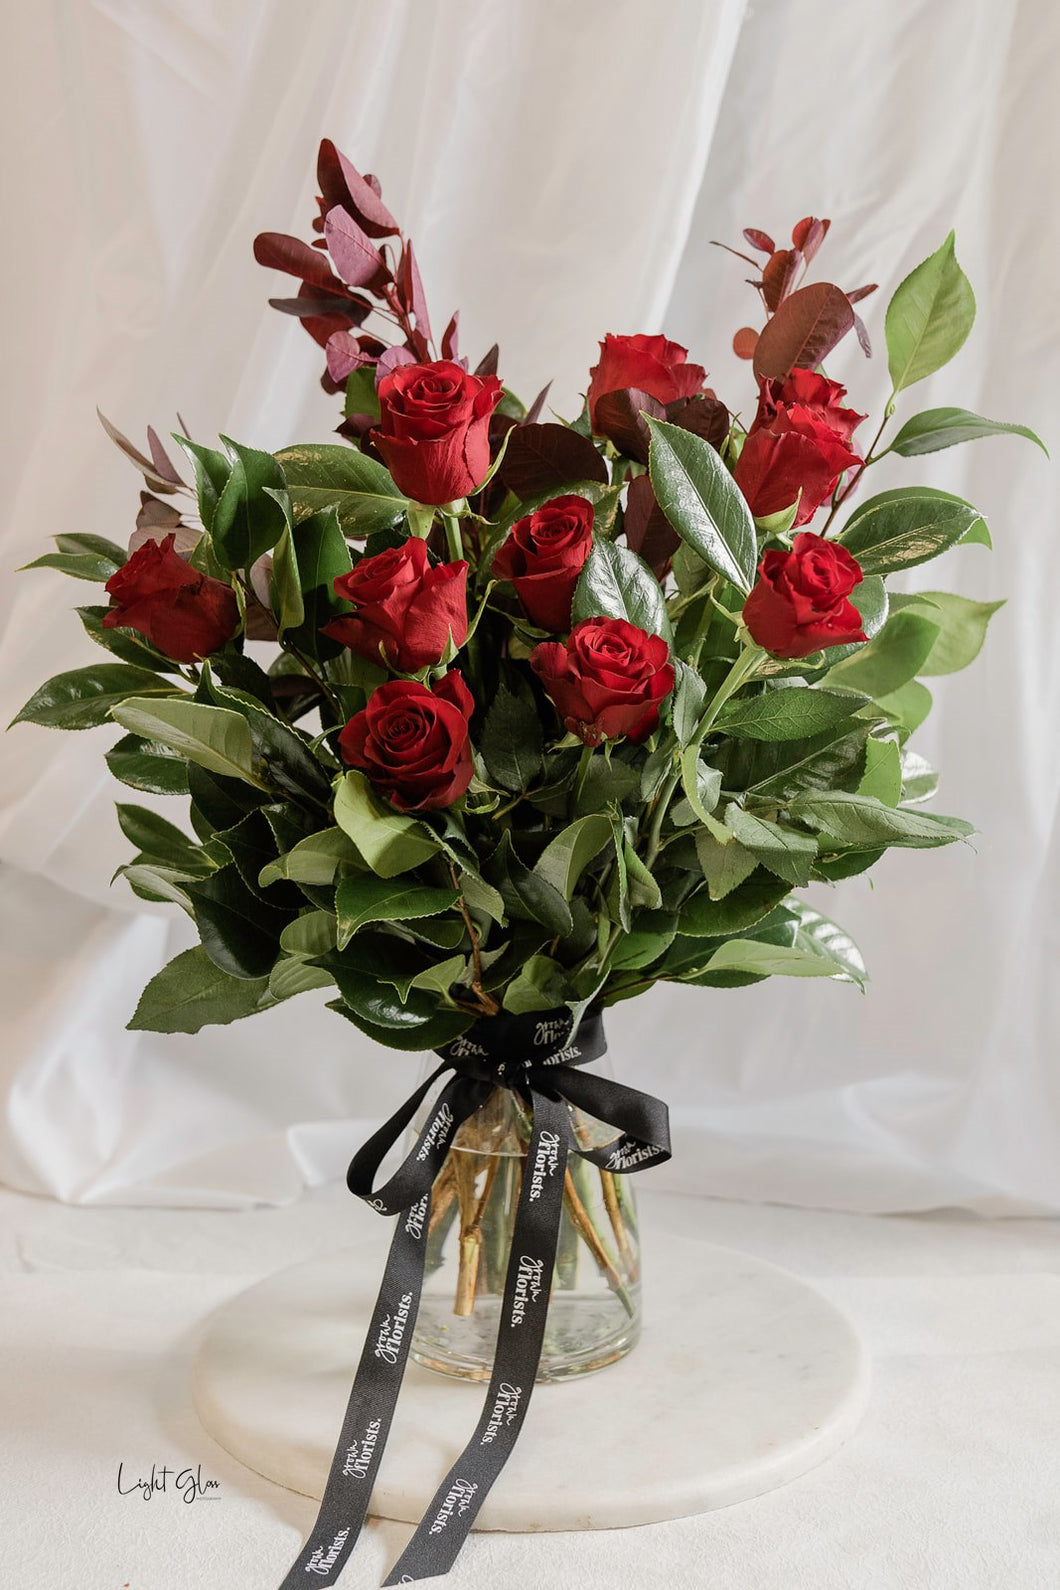 The classic red rose vase